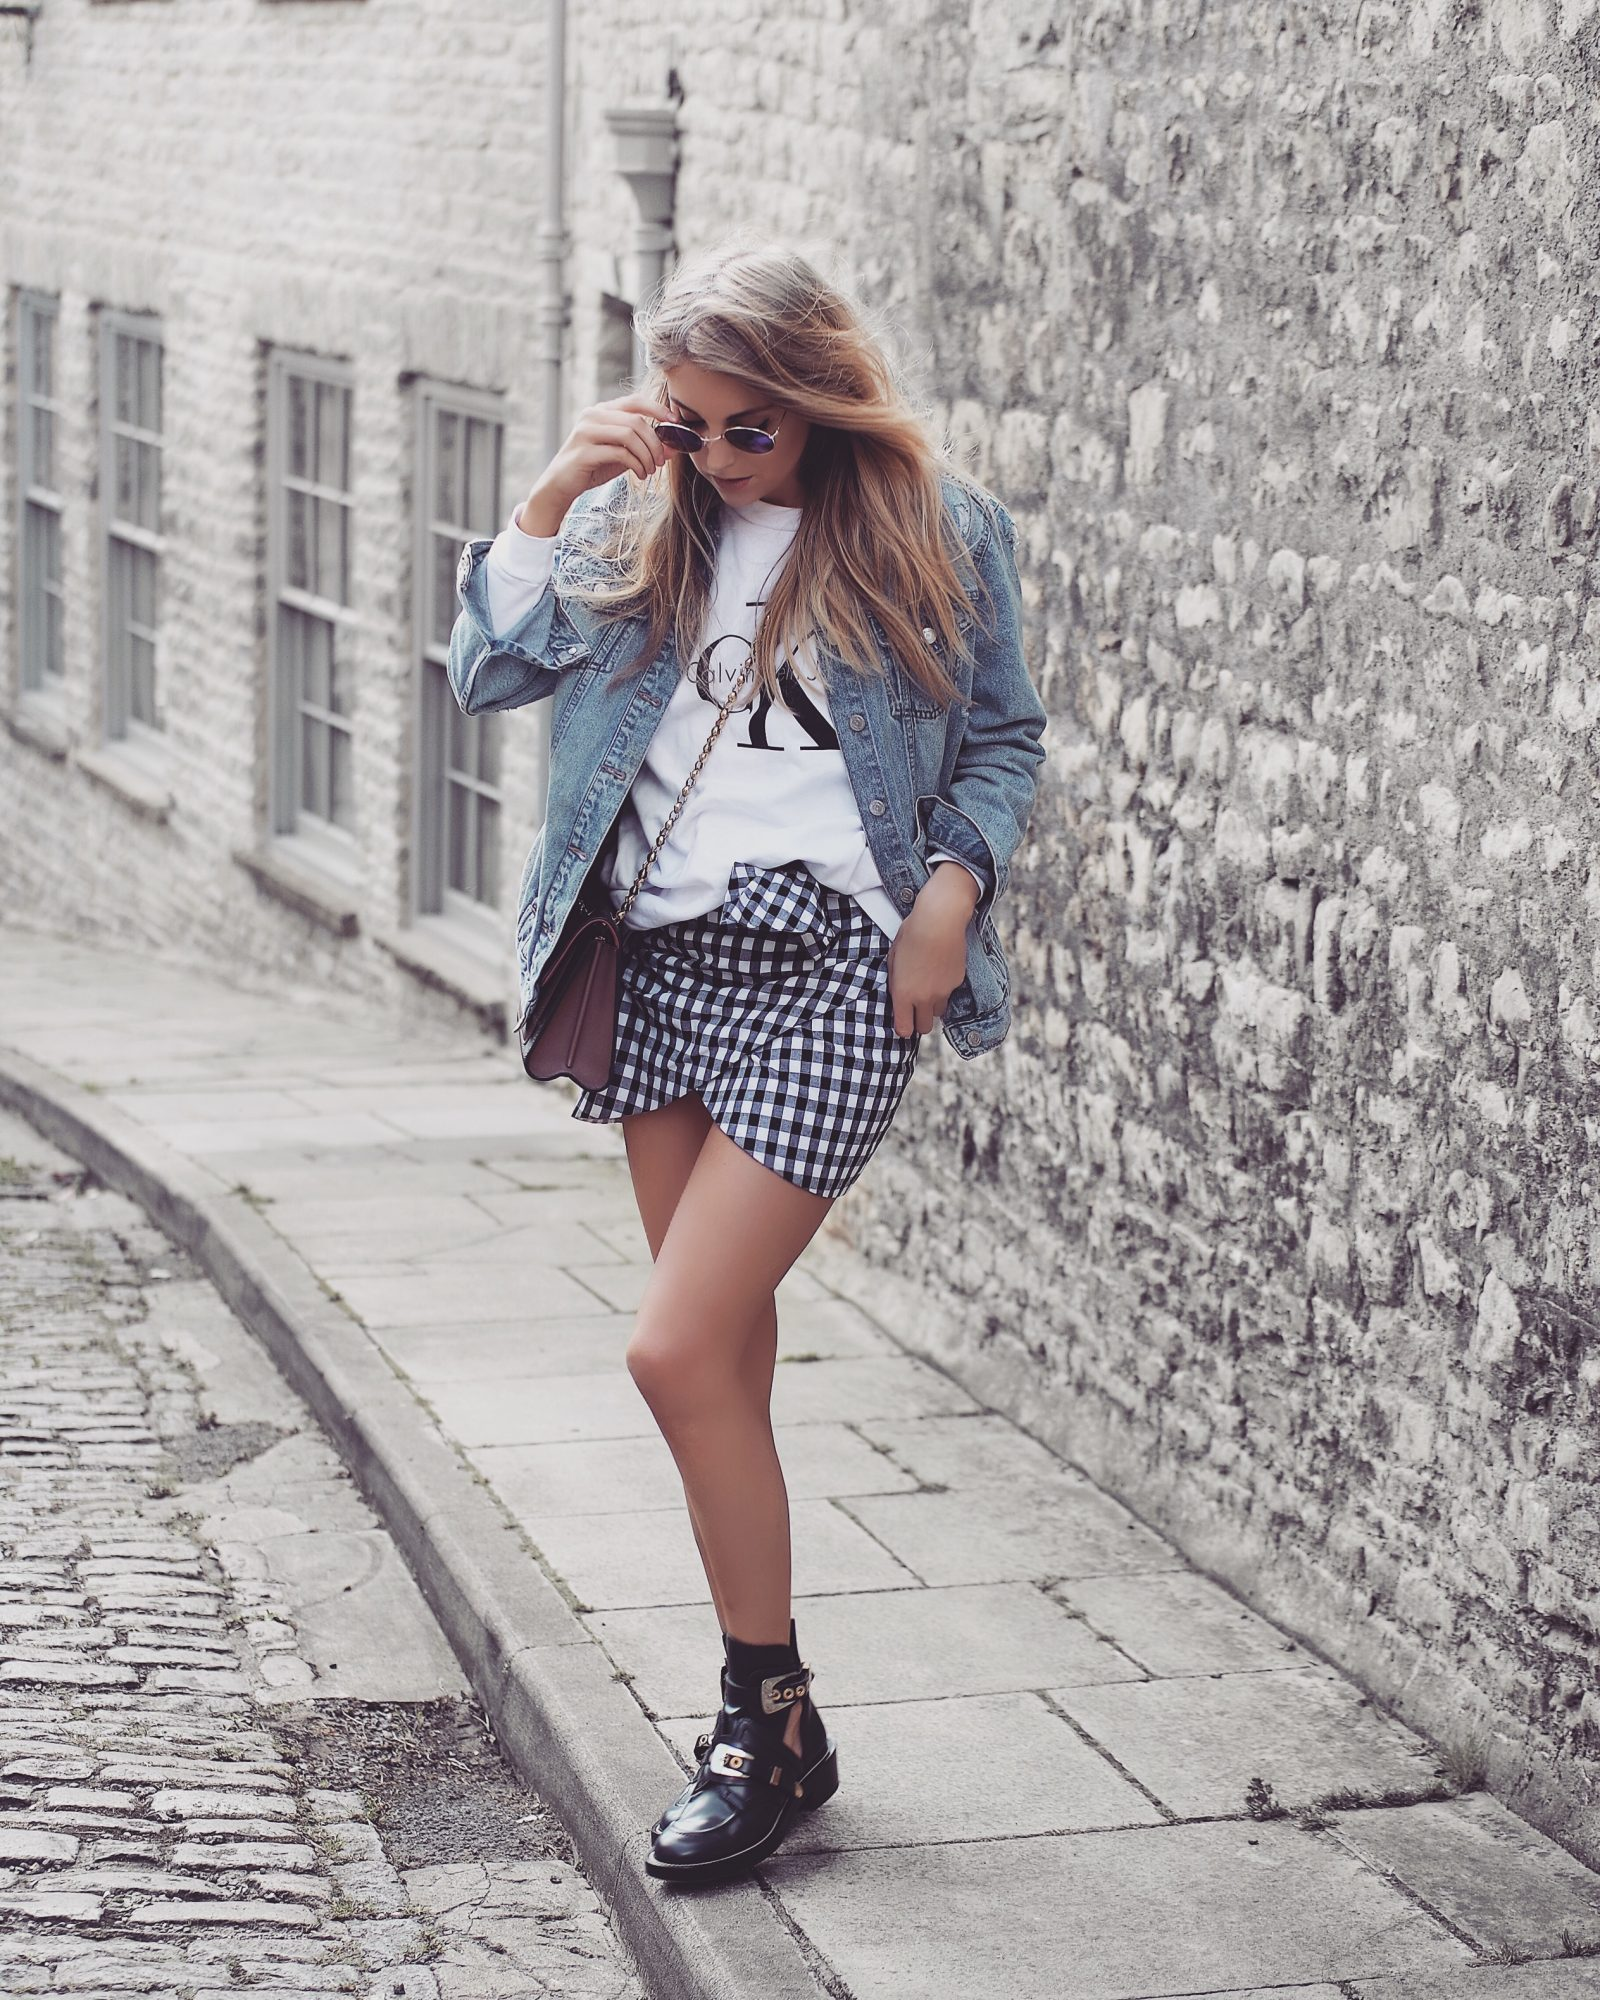 Gingham Skirt Outfit Inspiration